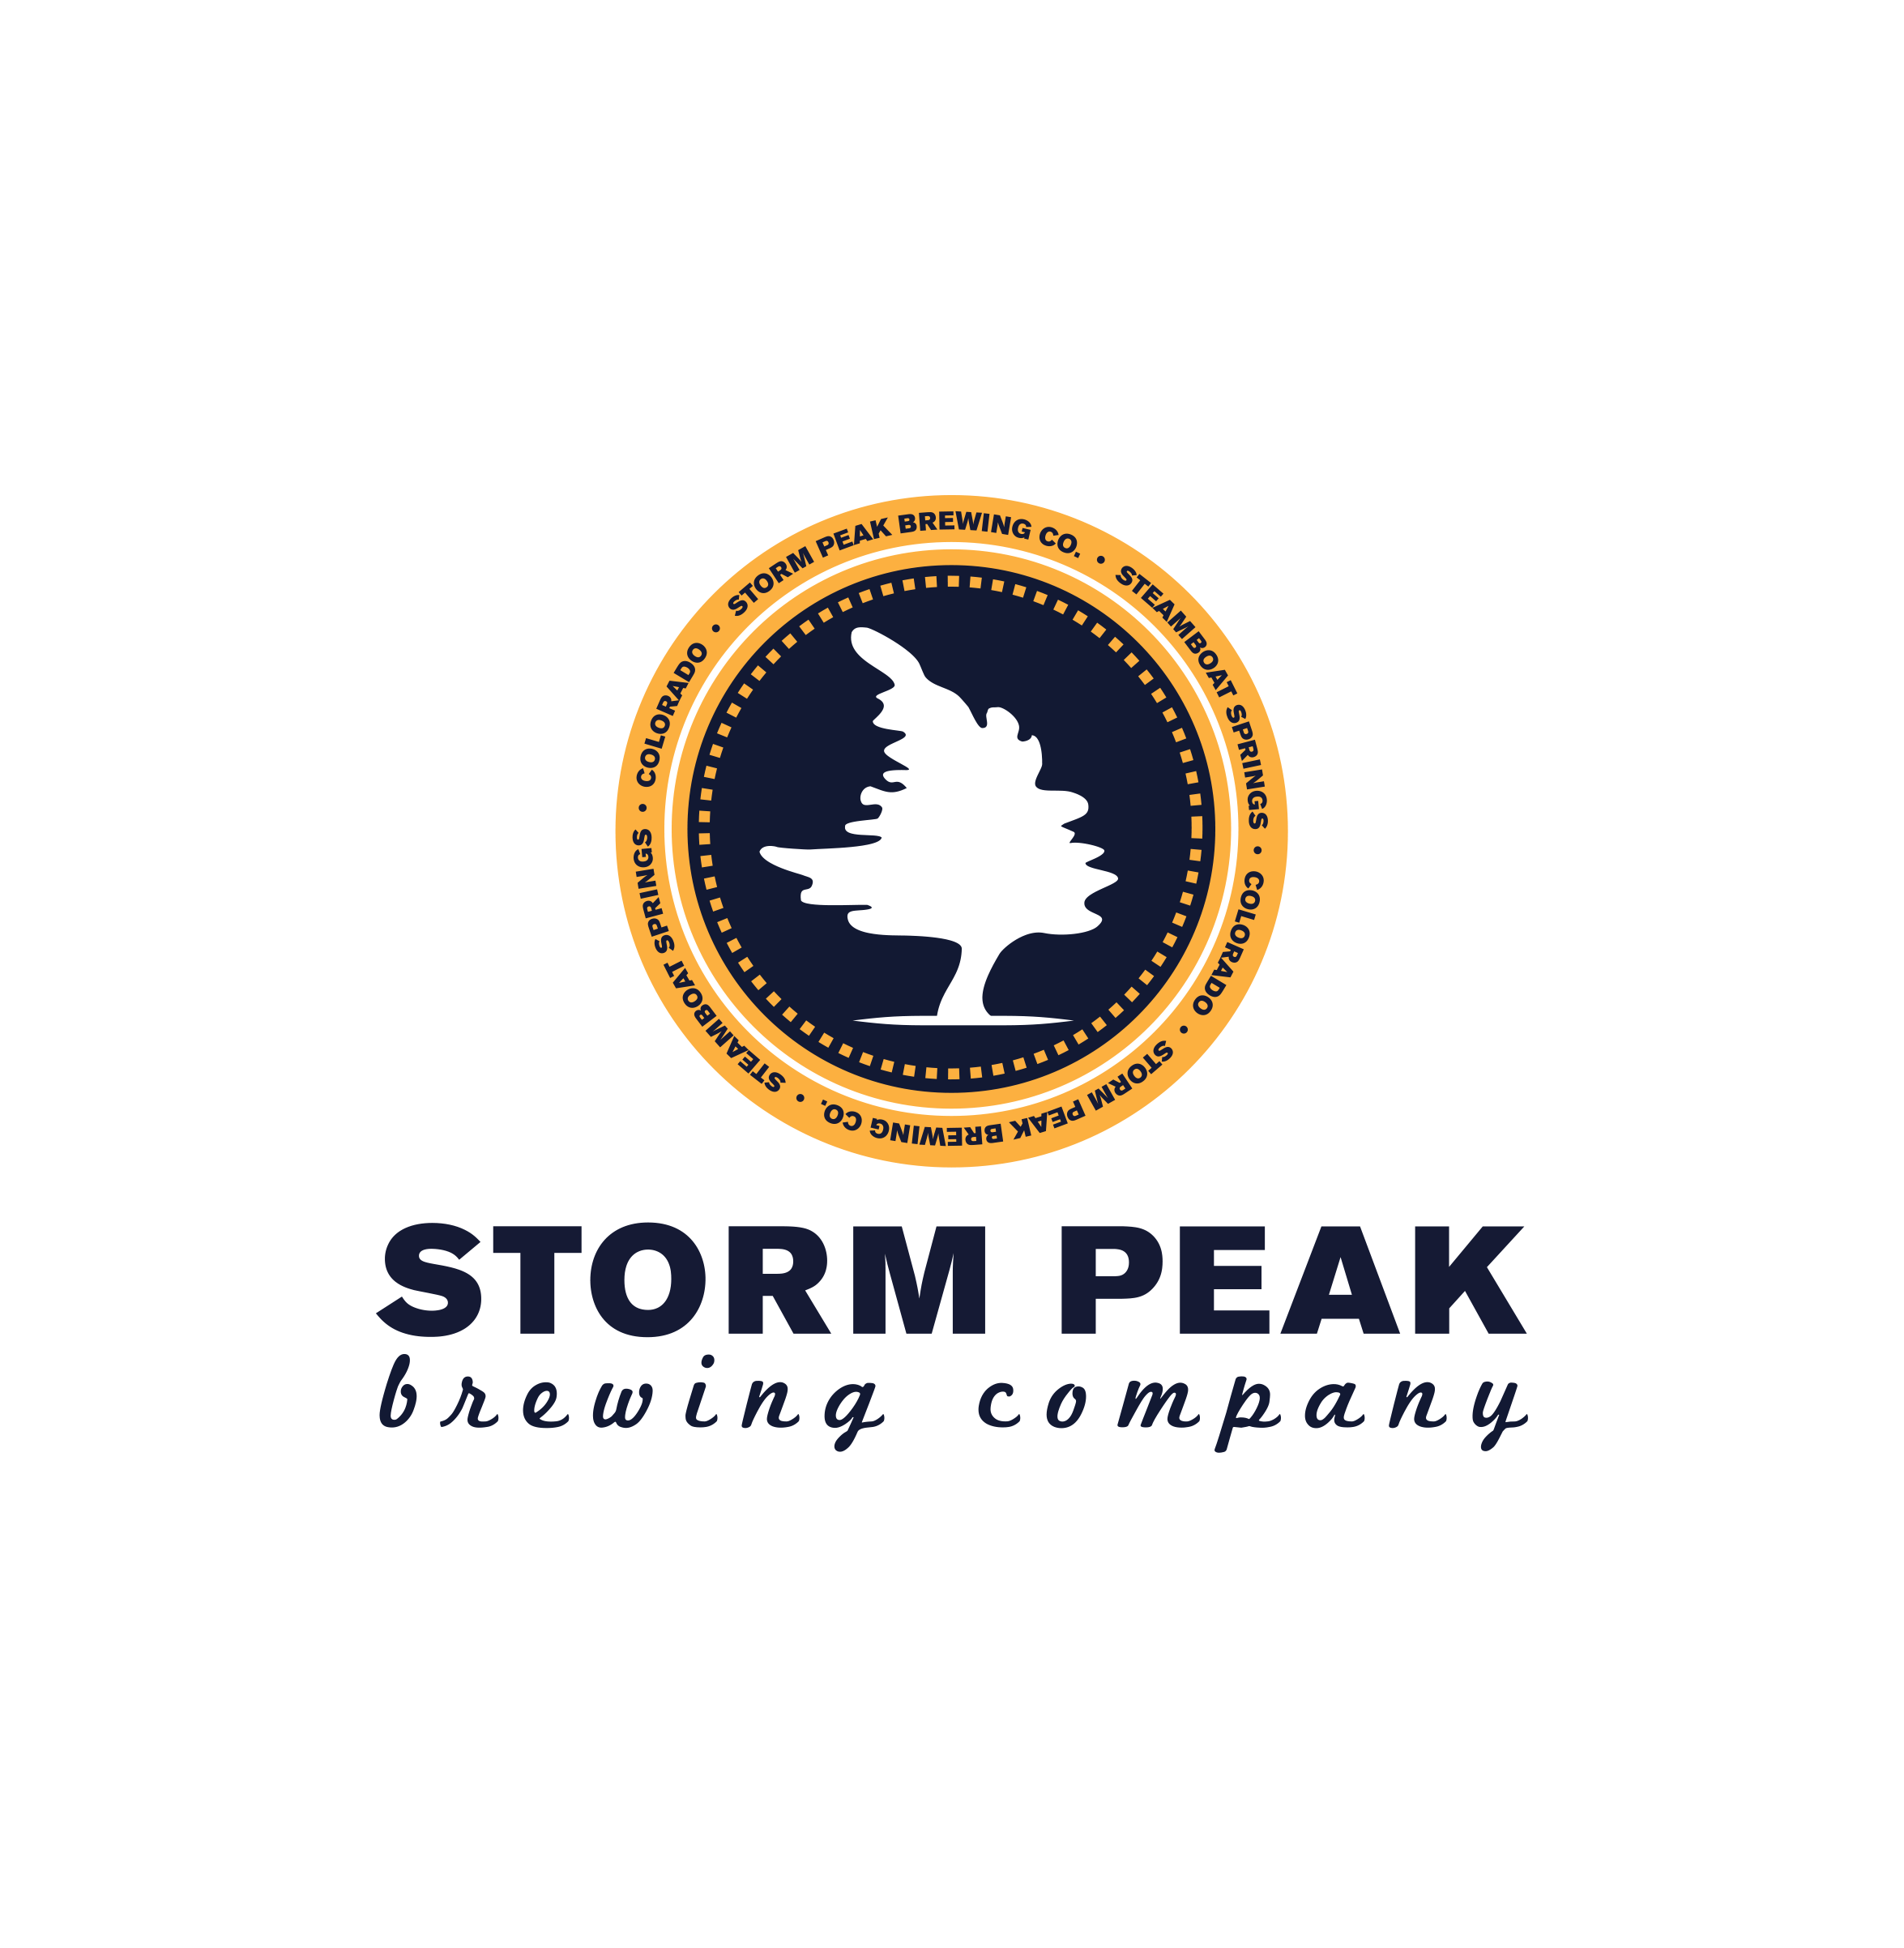 Storm Peak Brewing